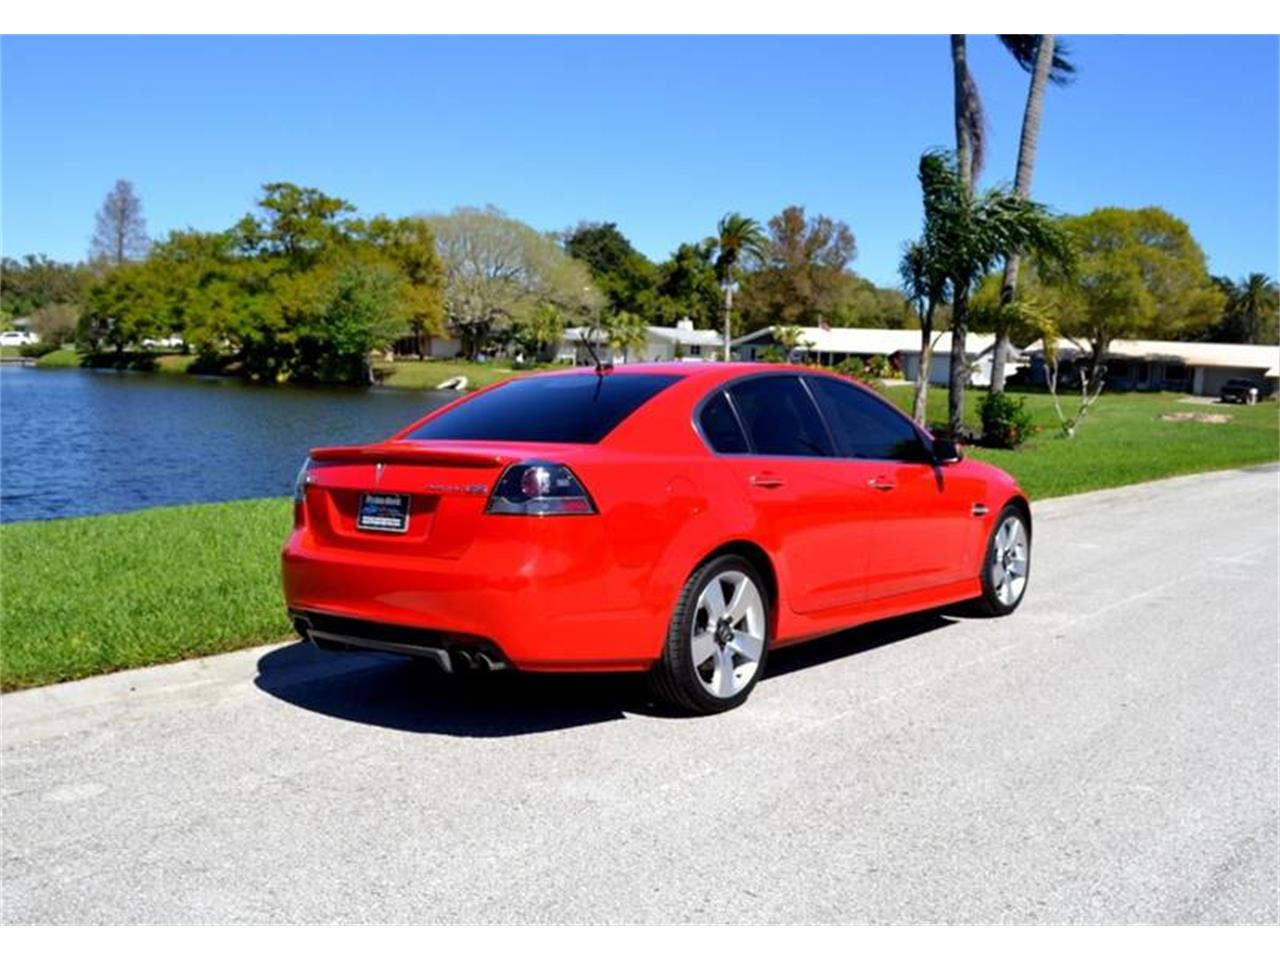 2009 Pontiac G8 for sale in Clearwater, FL – photo 6